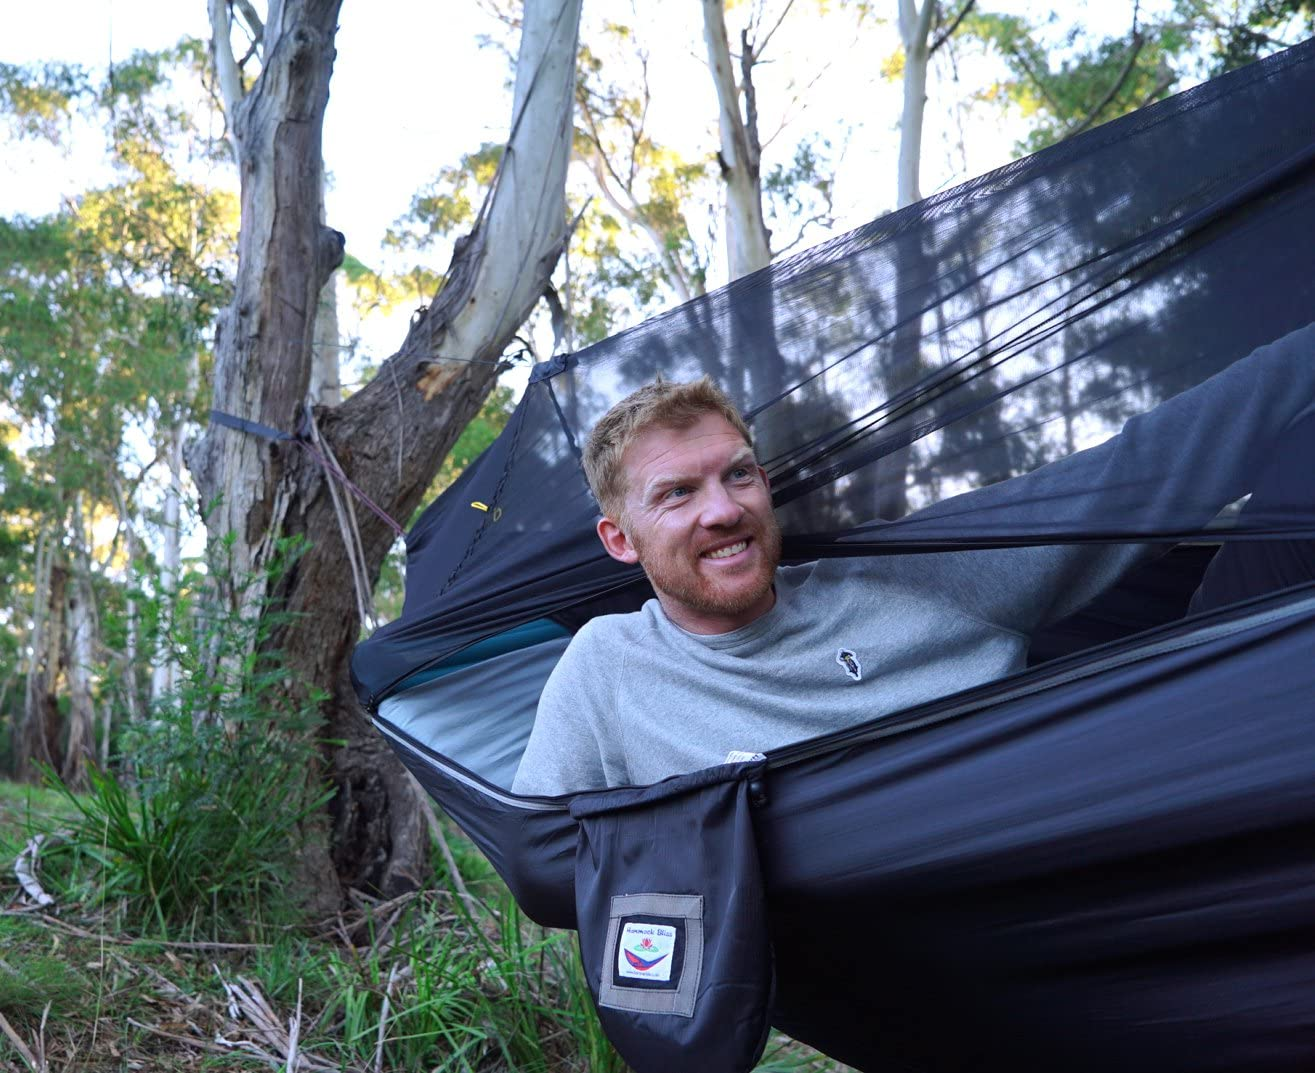 Insect Free Hanging Tent That Hangs Like A Hammock But Sleeps Like A Bed Hammock Bliss Sky Bed Bug Free Unique Asymmetrical Design Creates An Amazing Lay Flat Camping Hammock Sleeping Experience